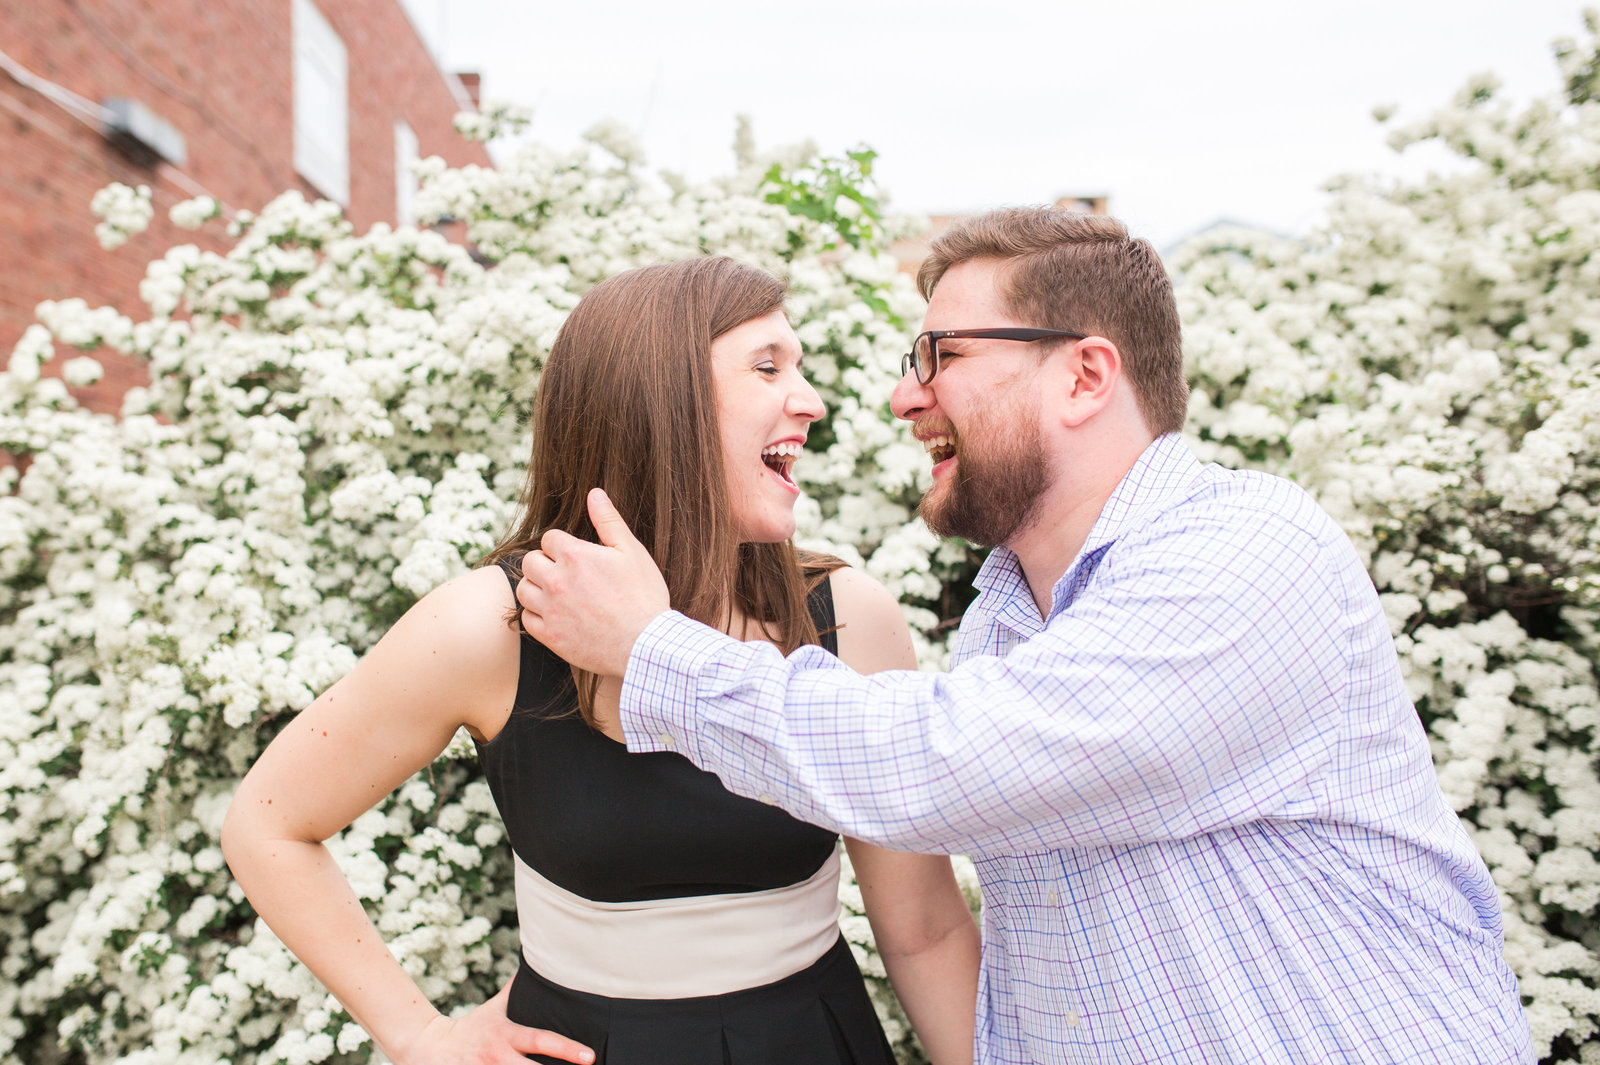 downtown-kent-engagement-session-allison-ewing-photography-002-1